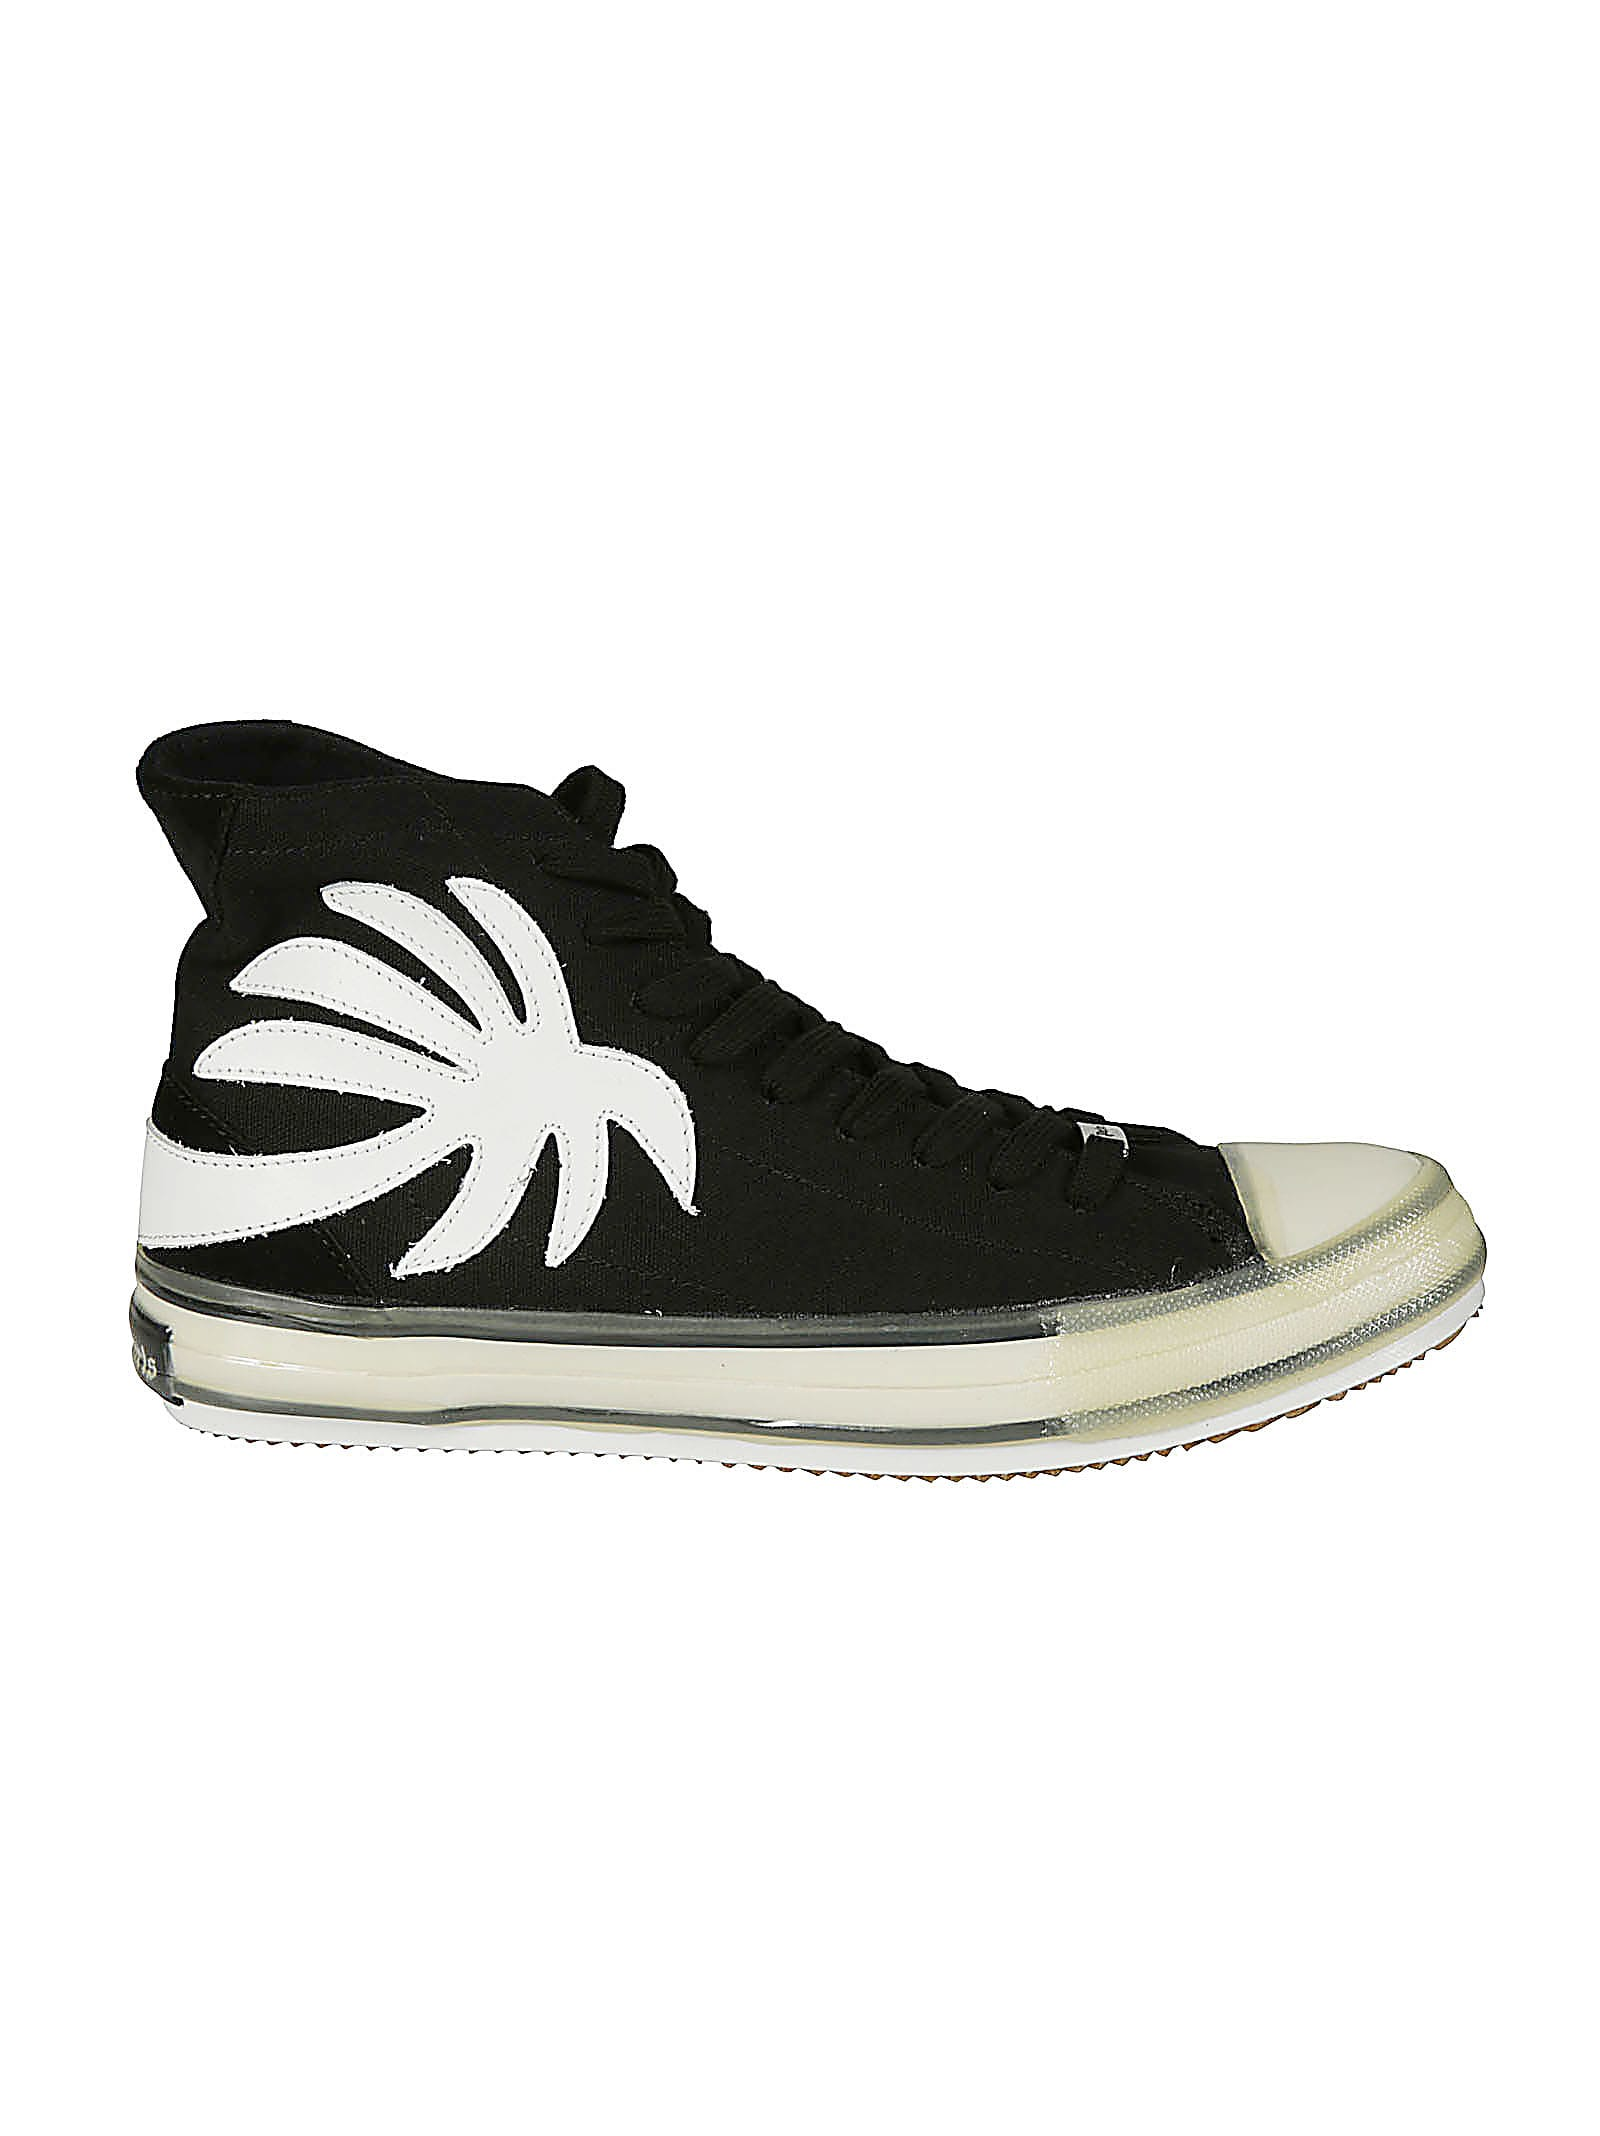 Palm Angels VULCAN HIGH TOP SNEAKERS